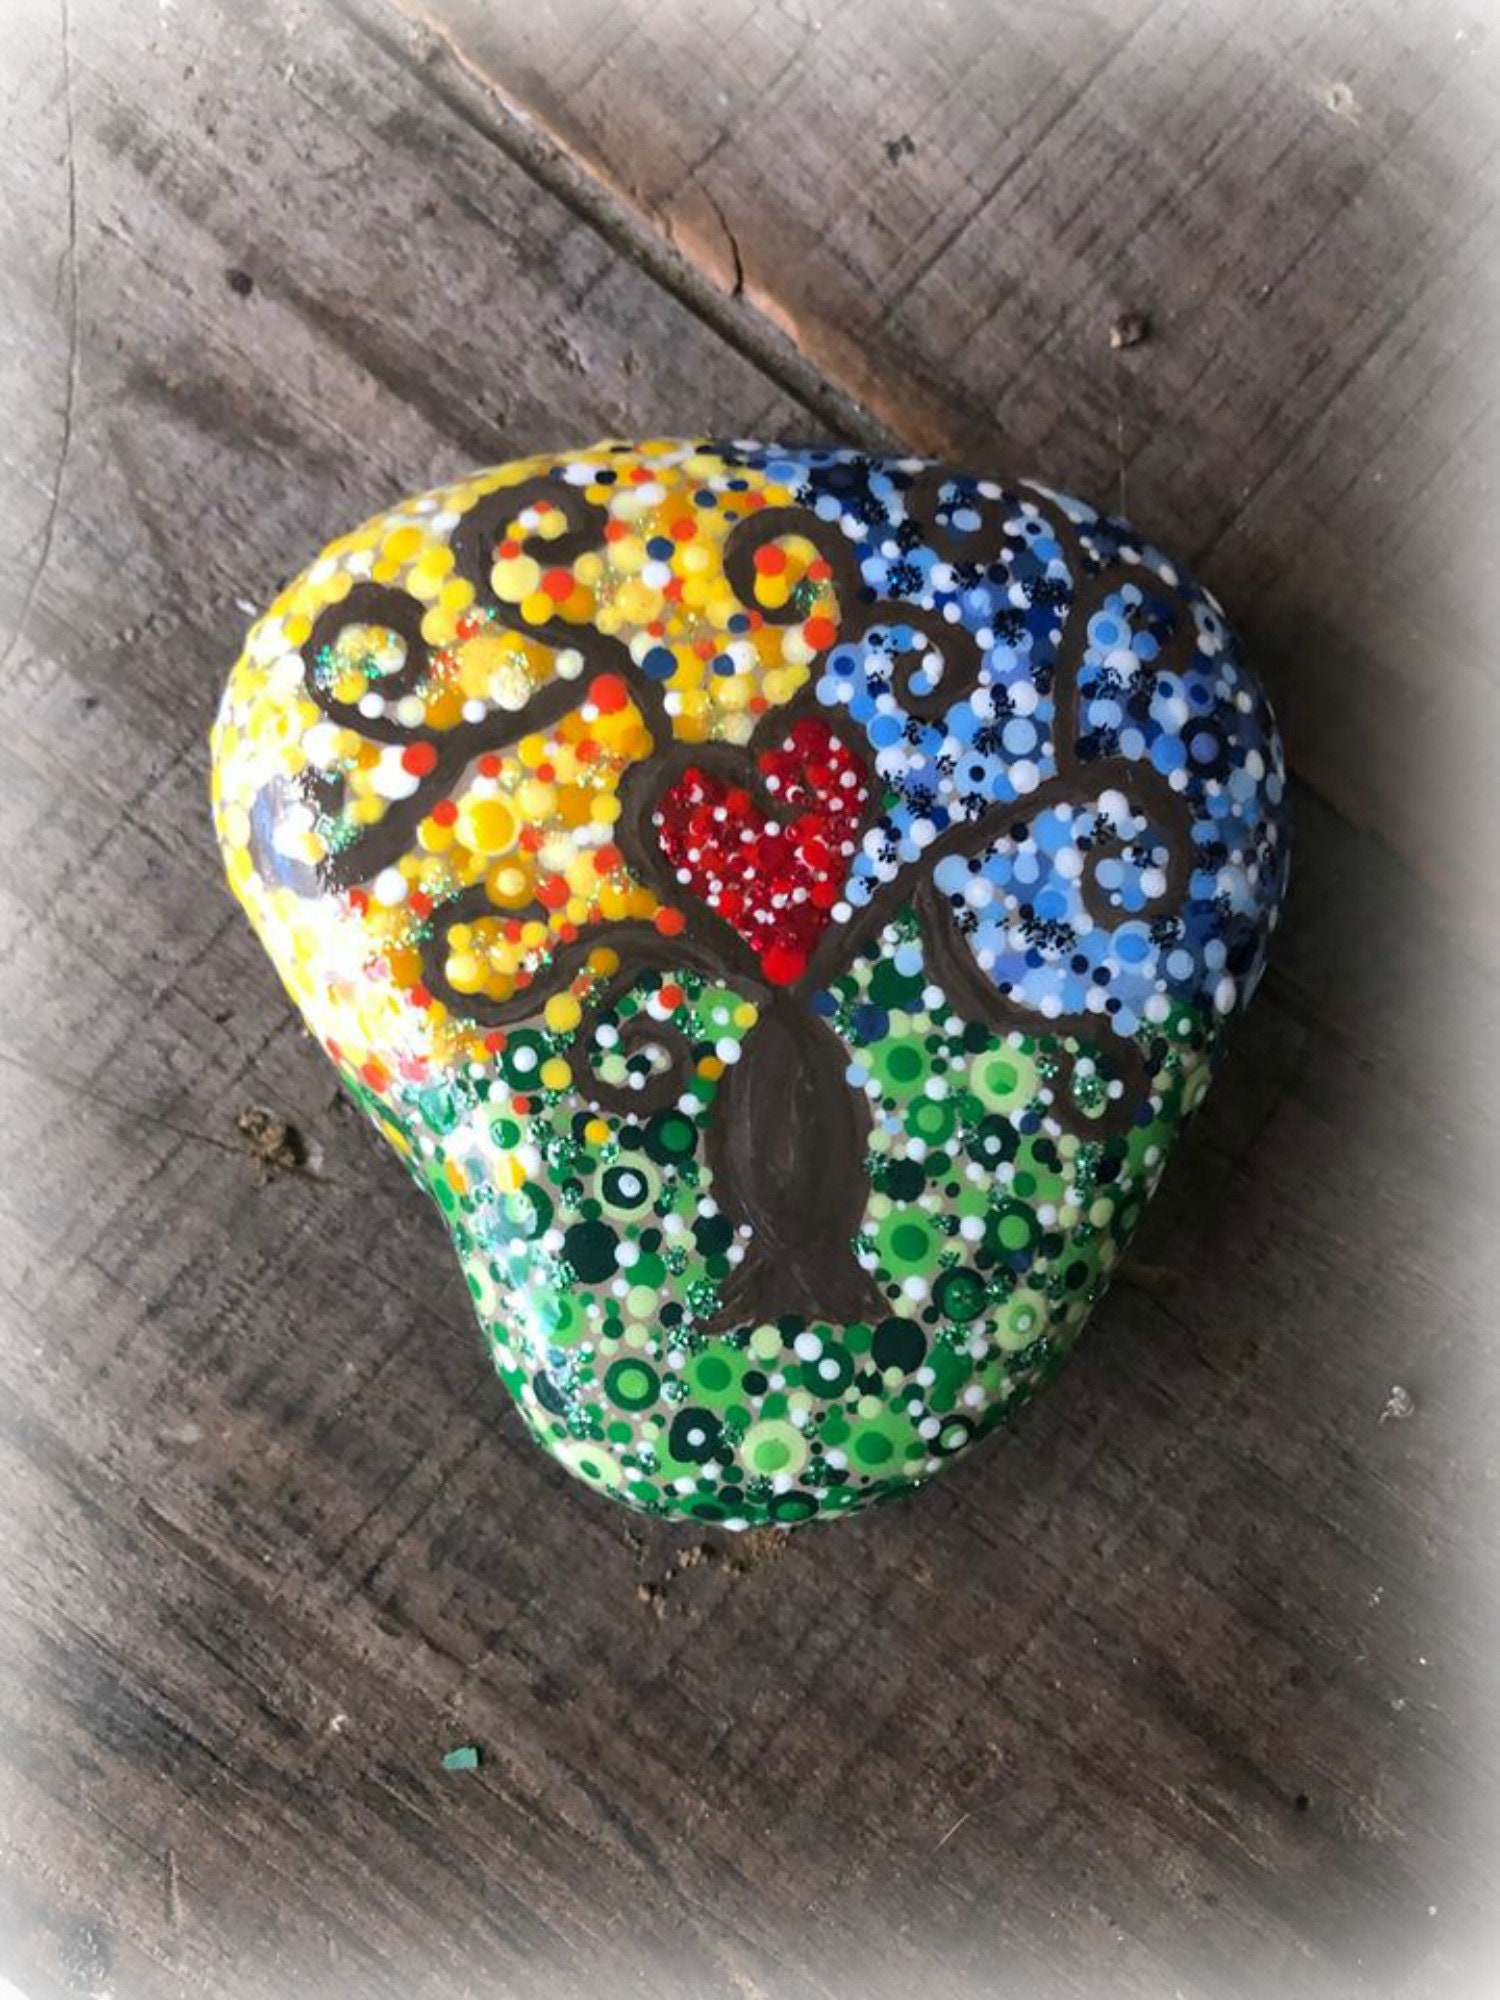 Tree Of Life Stone Painted Stones Tree Of Life Art Mindfulness Dot Art